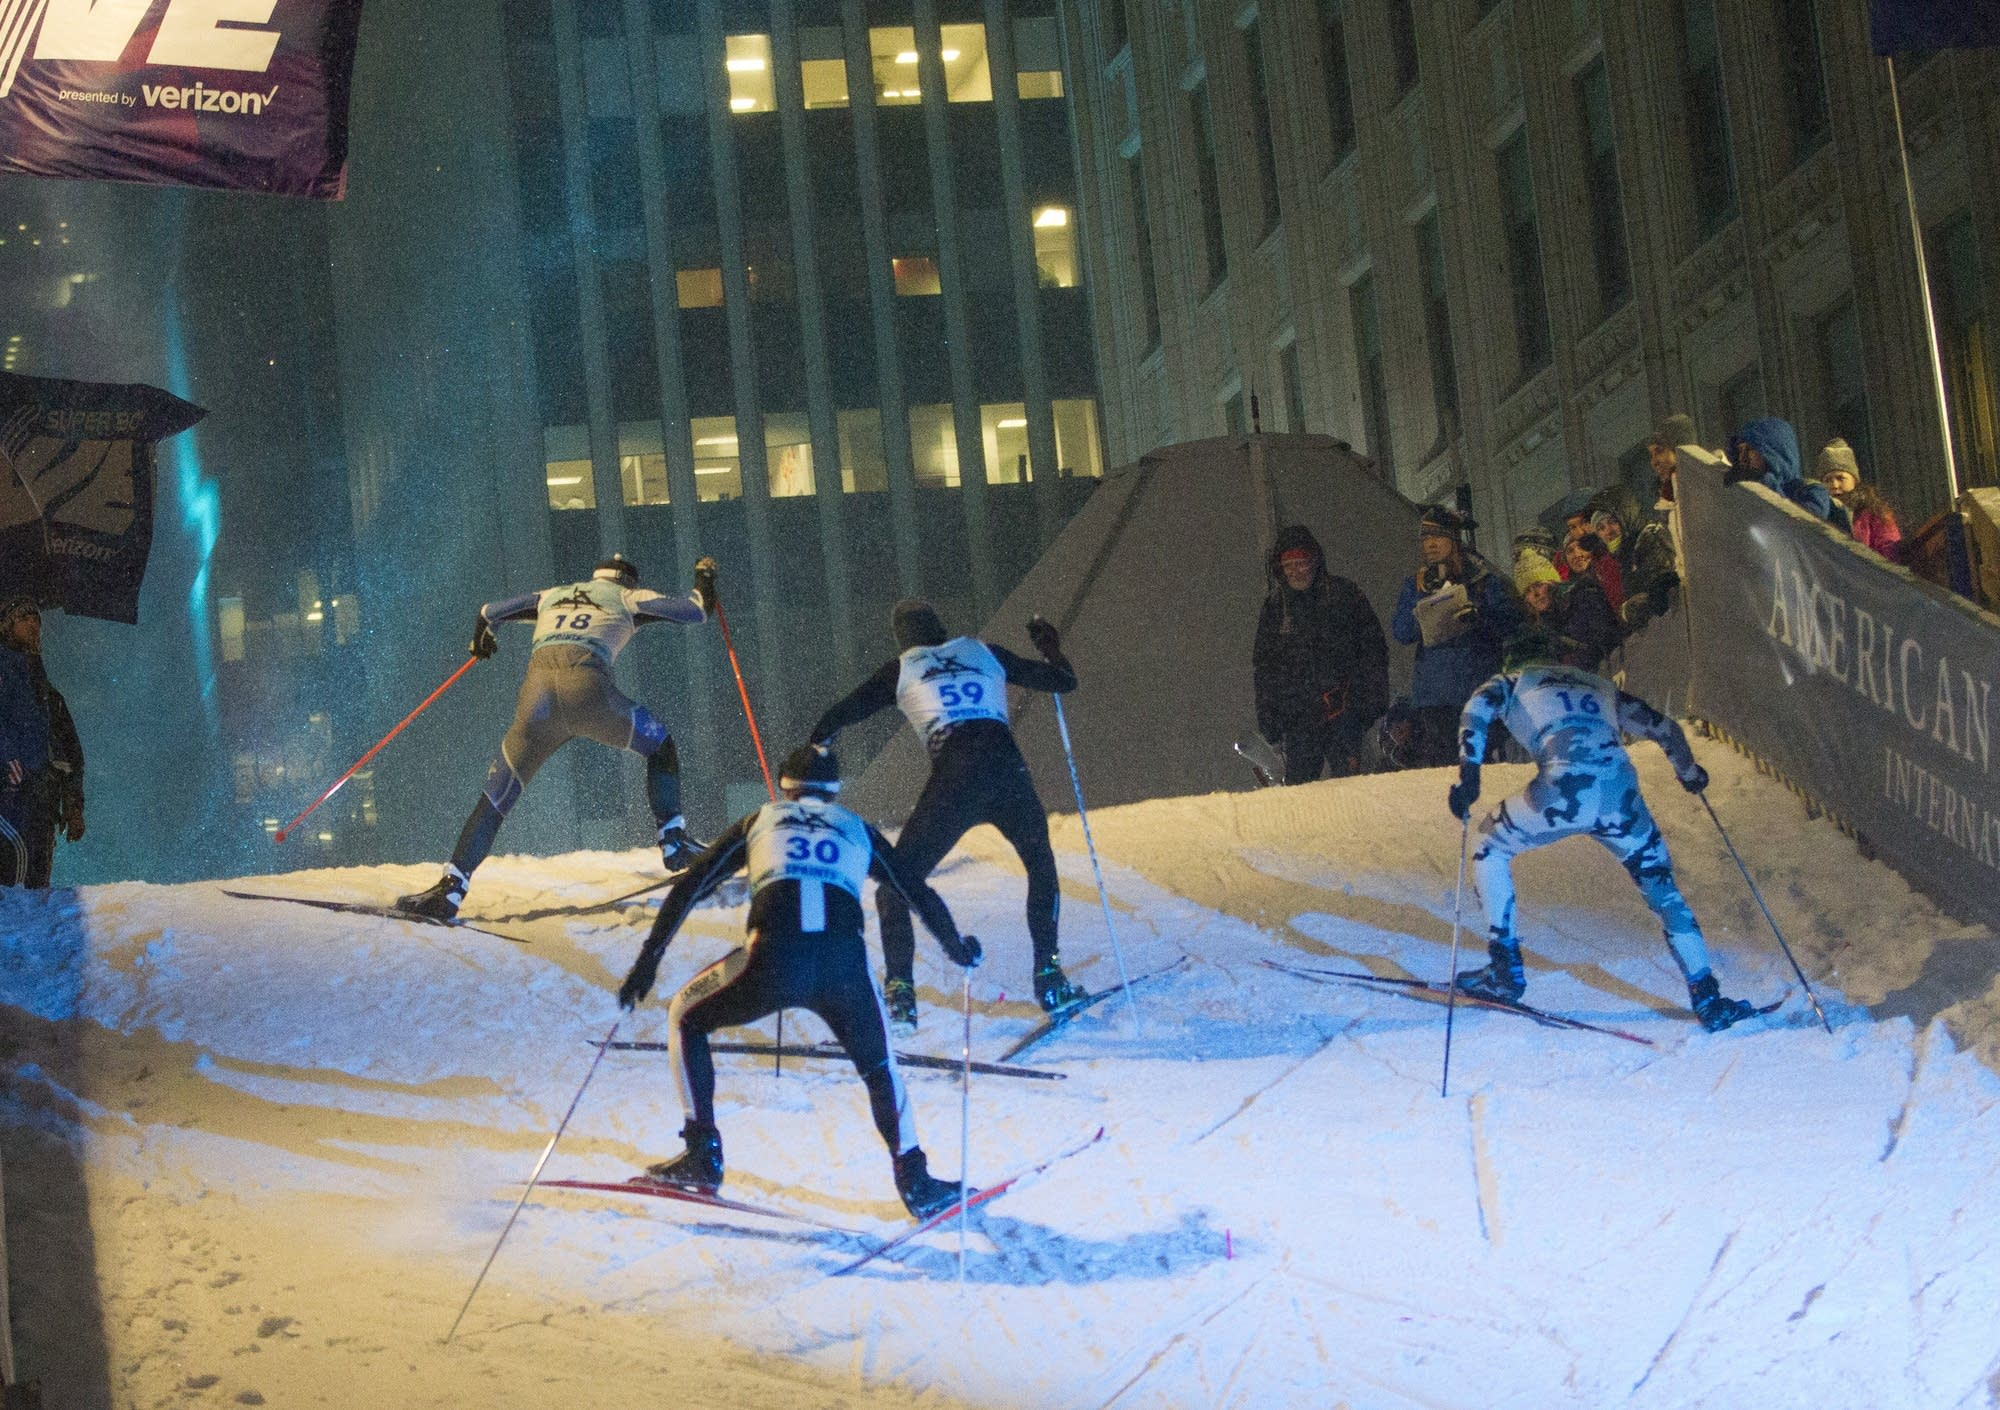 With downtown in the background, elite adult skiers climb the hill.